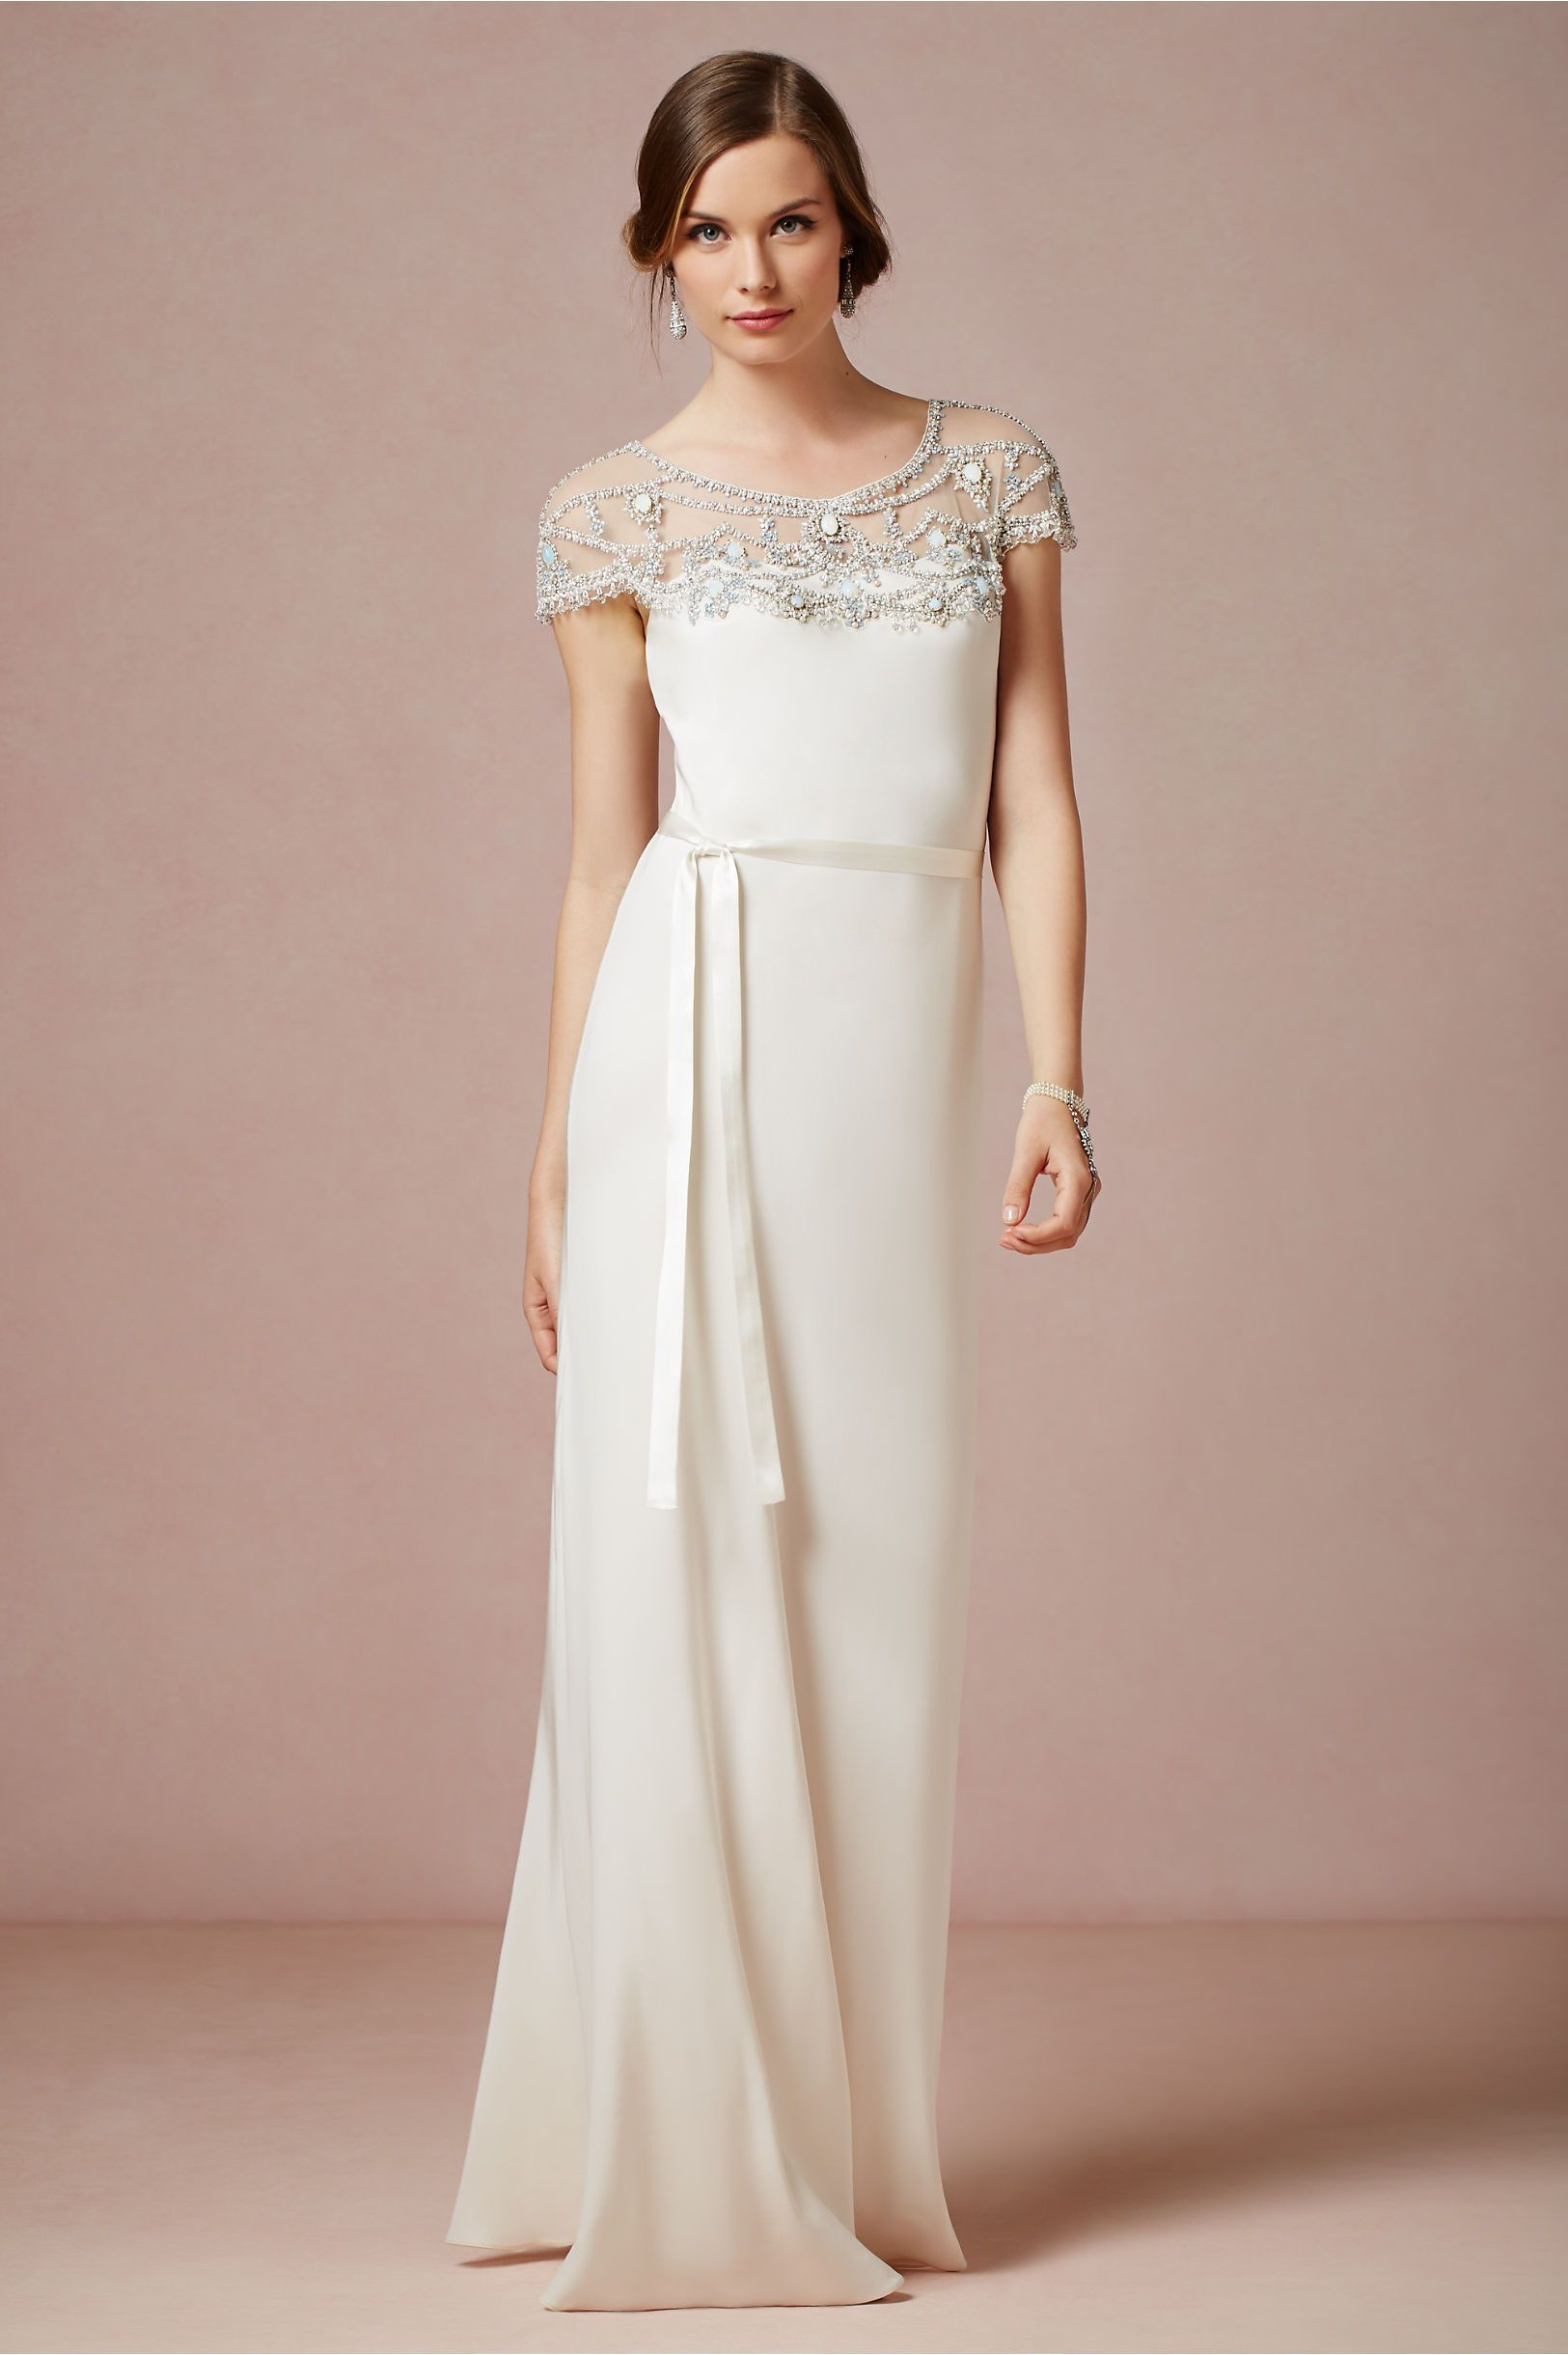 Top design plain ribbon dress | Wedding dresses | Pinterest ...